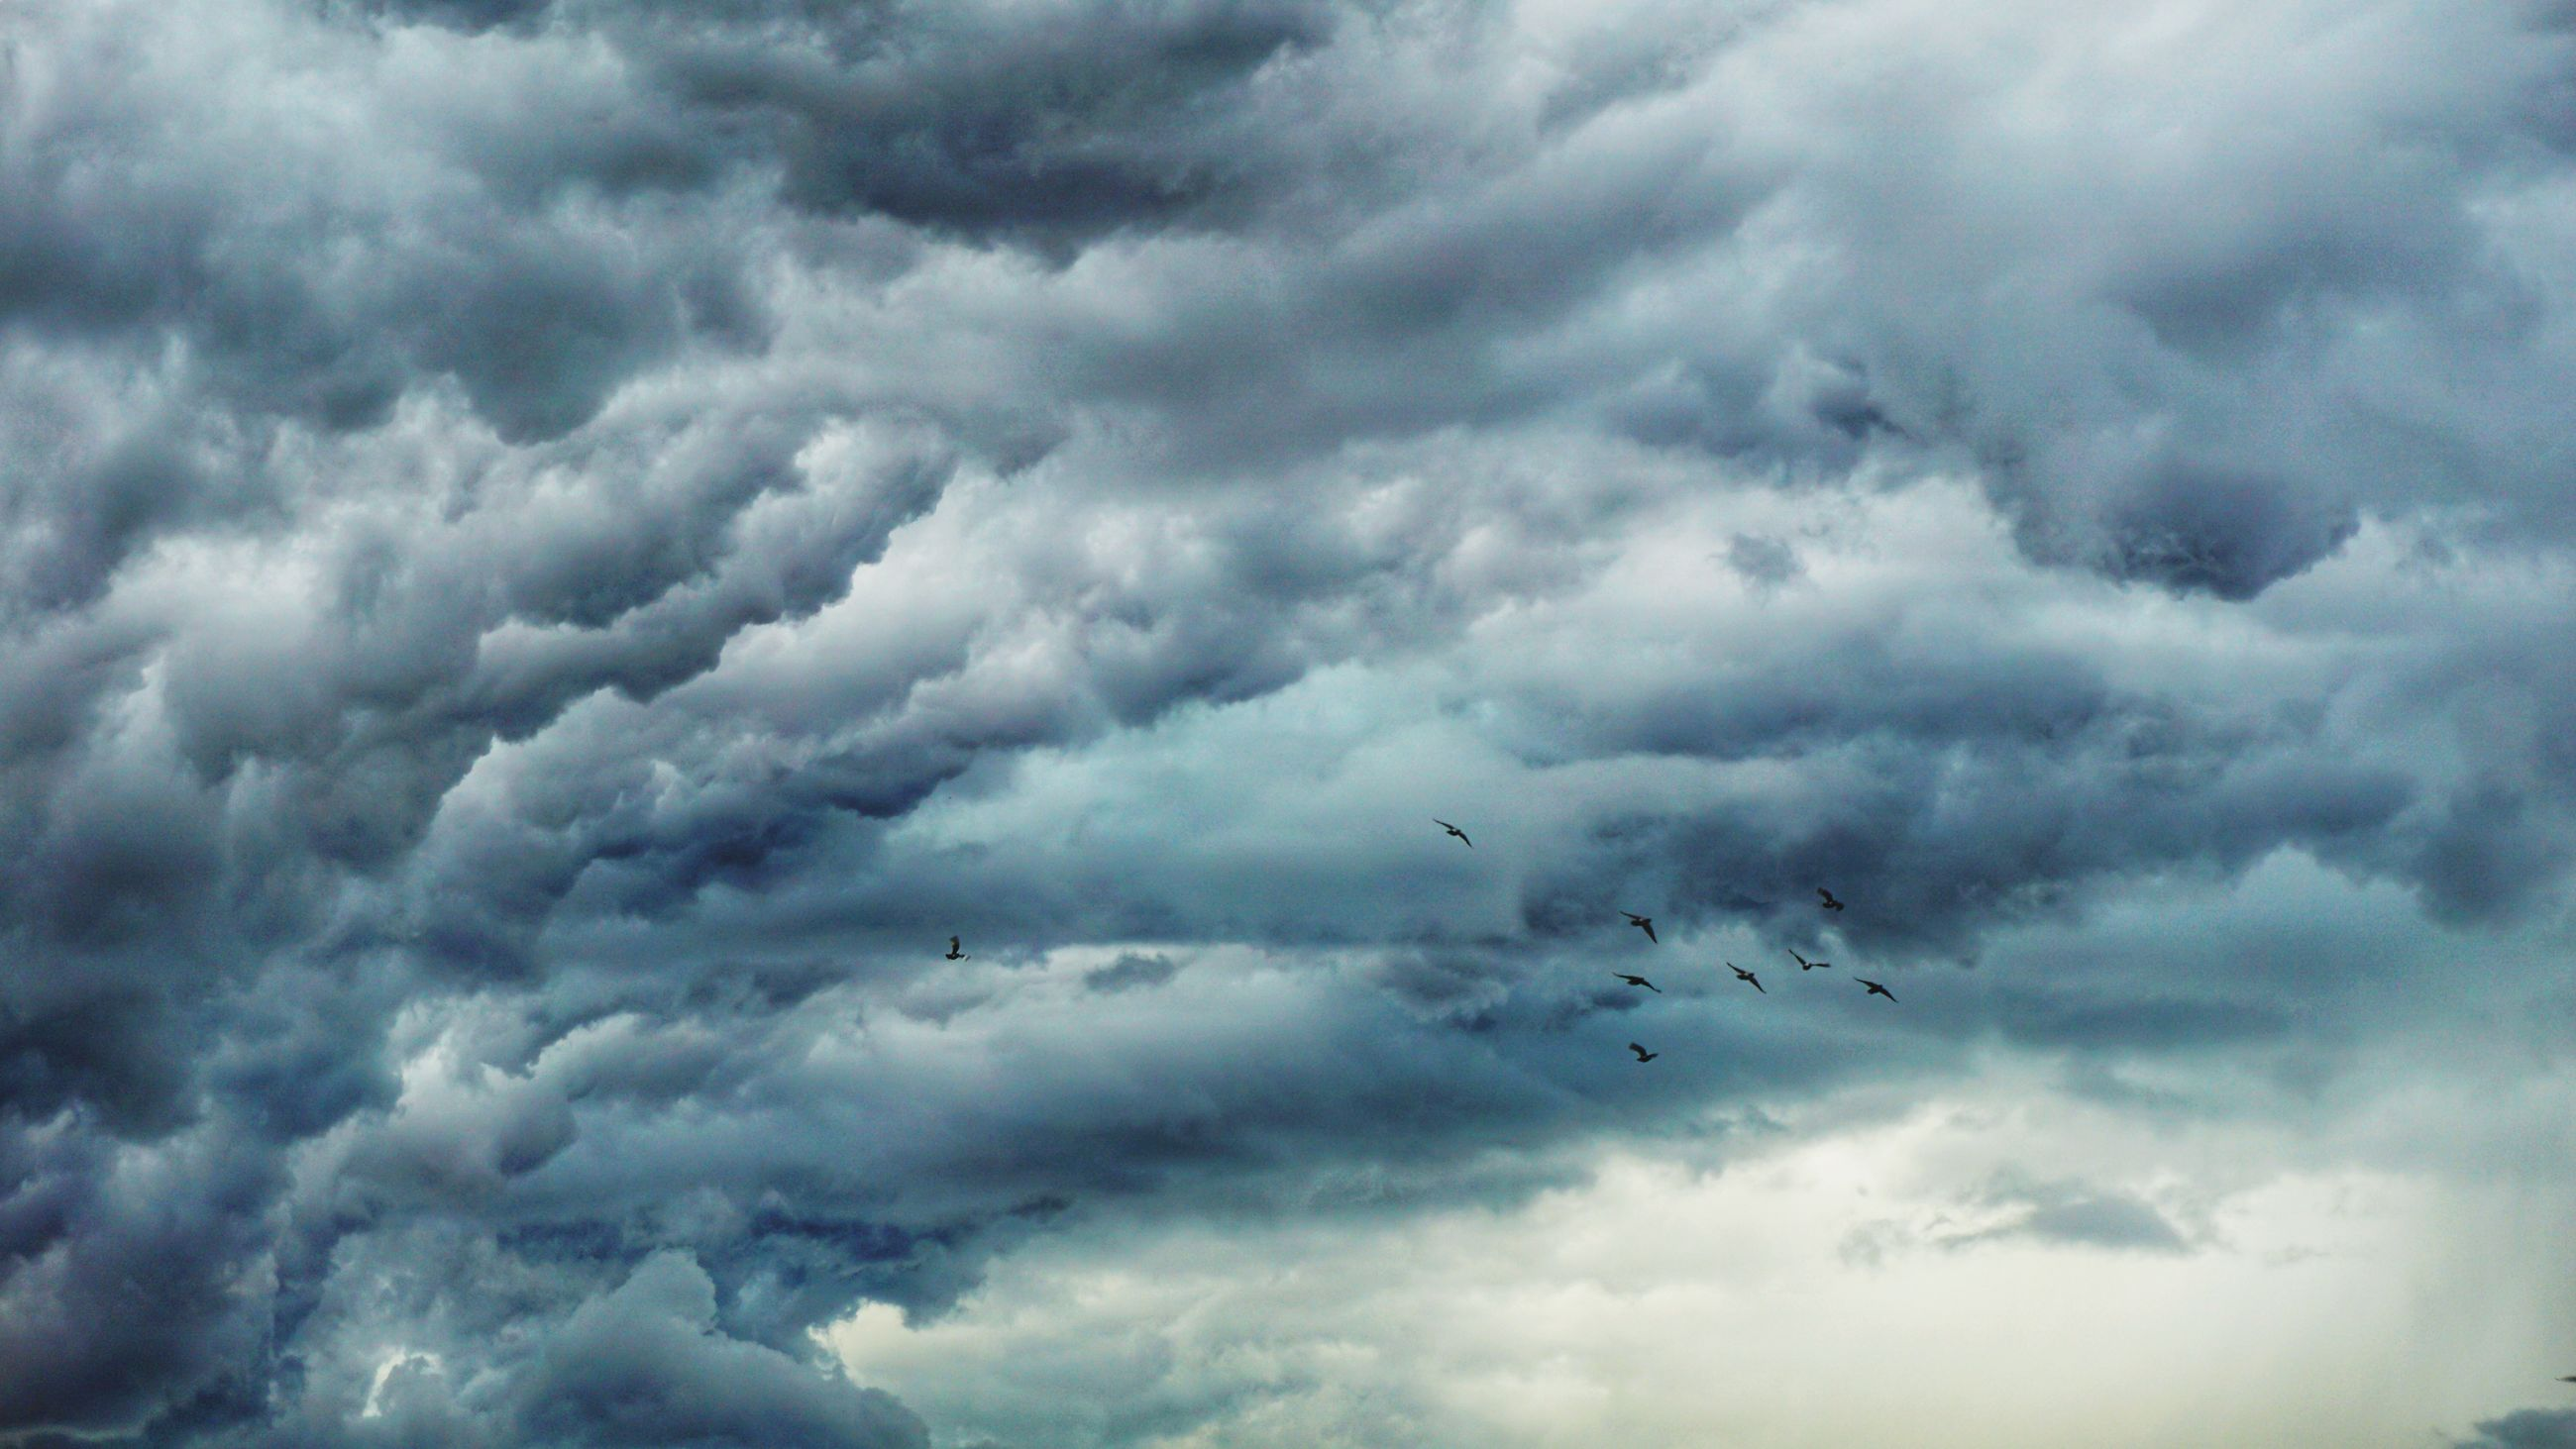 cloud - sky, sky, flying, beauty in nature, low angle view, animal, vertebrate, bird, nature, animal themes, overcast, group of animals, storm, no people, animals in the wild, animal wildlife, scenics - nature, day, storm cloud, outdoors, plane, flock of birds, ominous